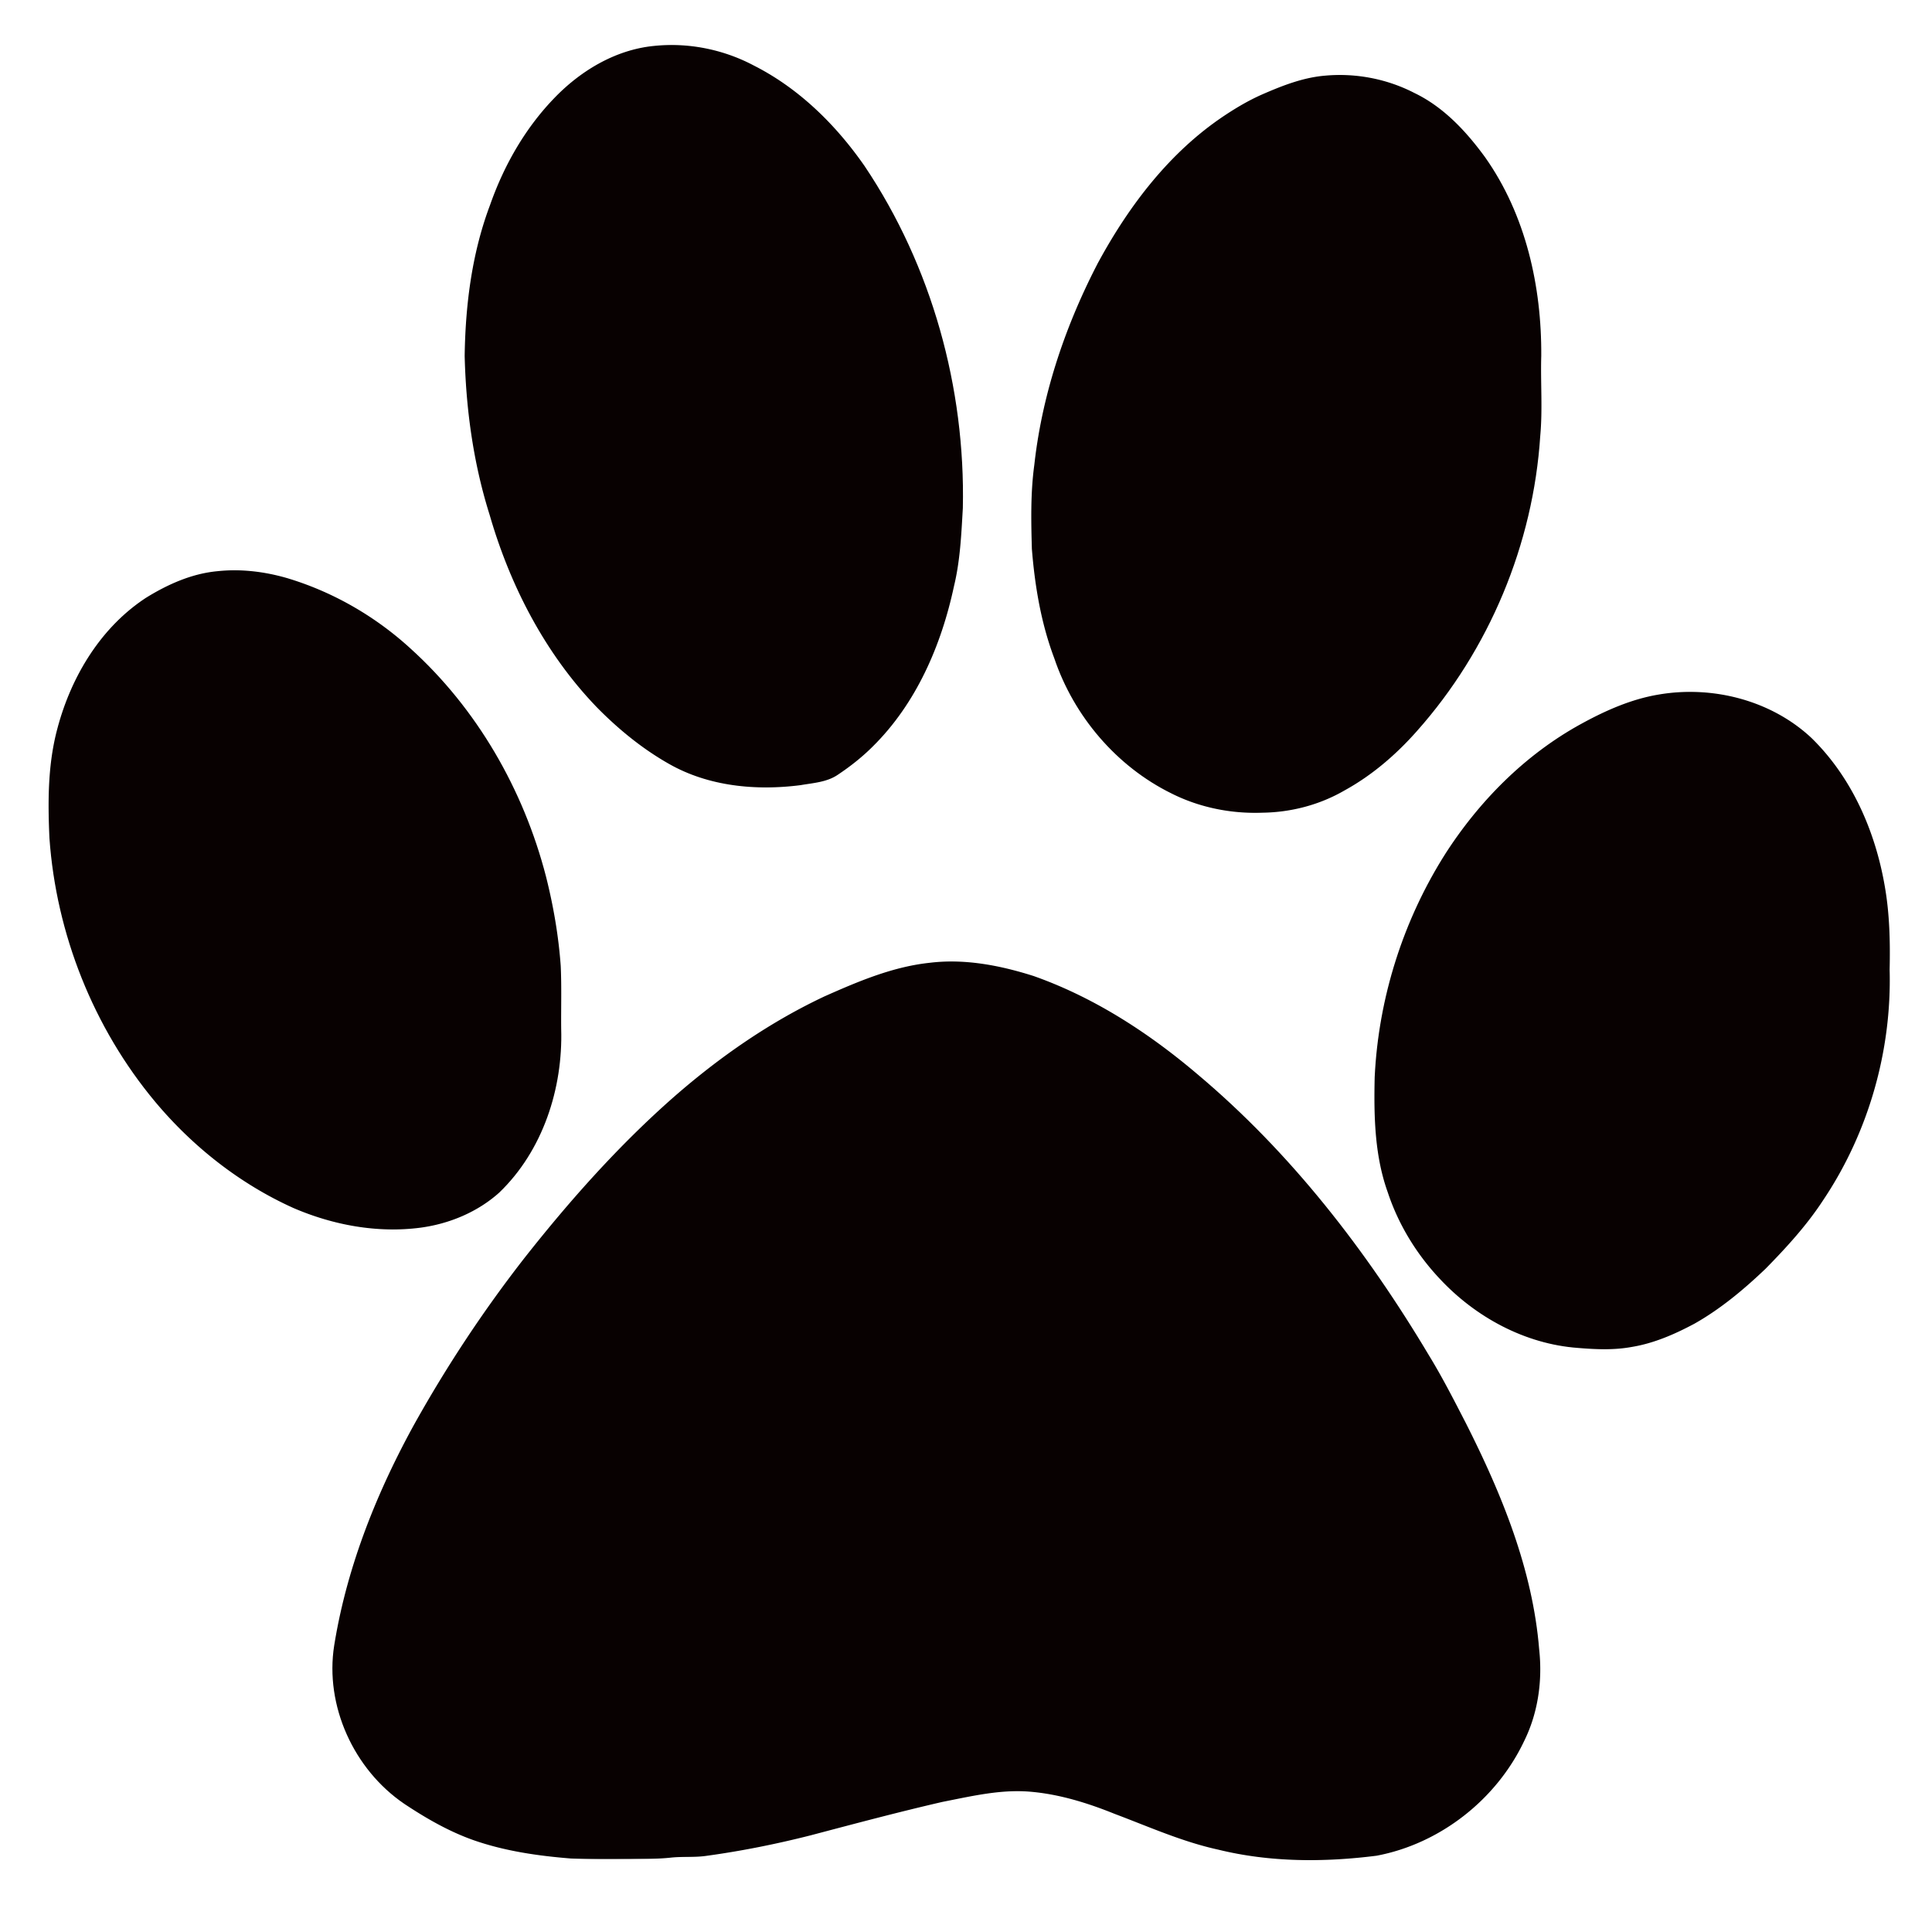 Panther Paw Print - Panther Paw Print Clip Art - ClipArt Best - ClipArt Best | Locker ...